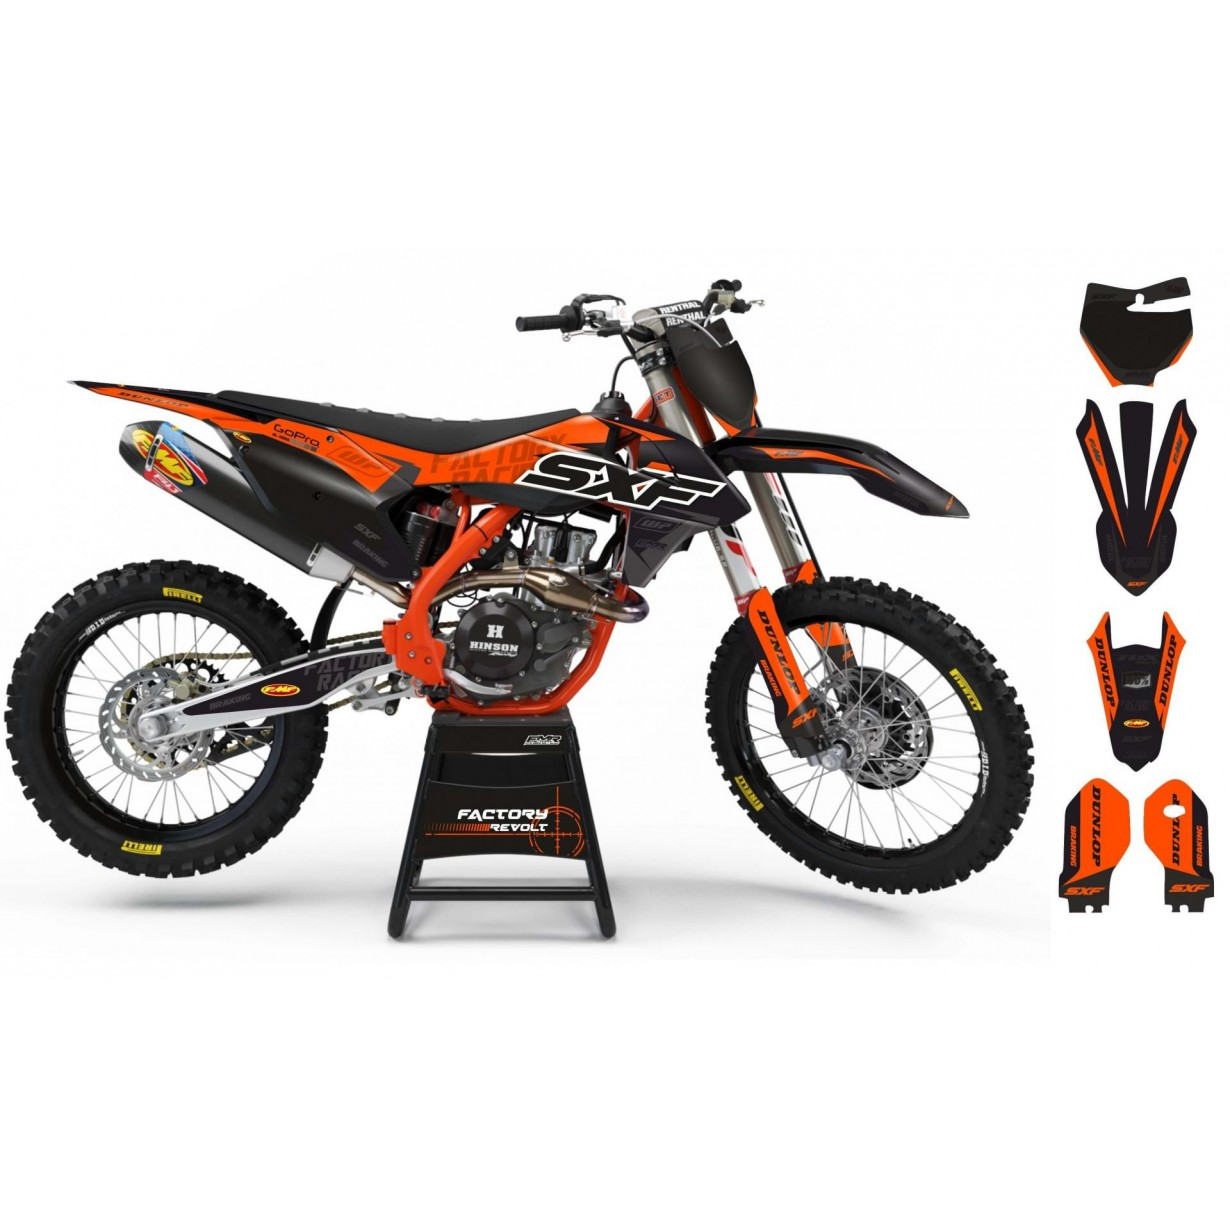 Kit déco Perso KTM Factory Revolt A26C3 orange/black